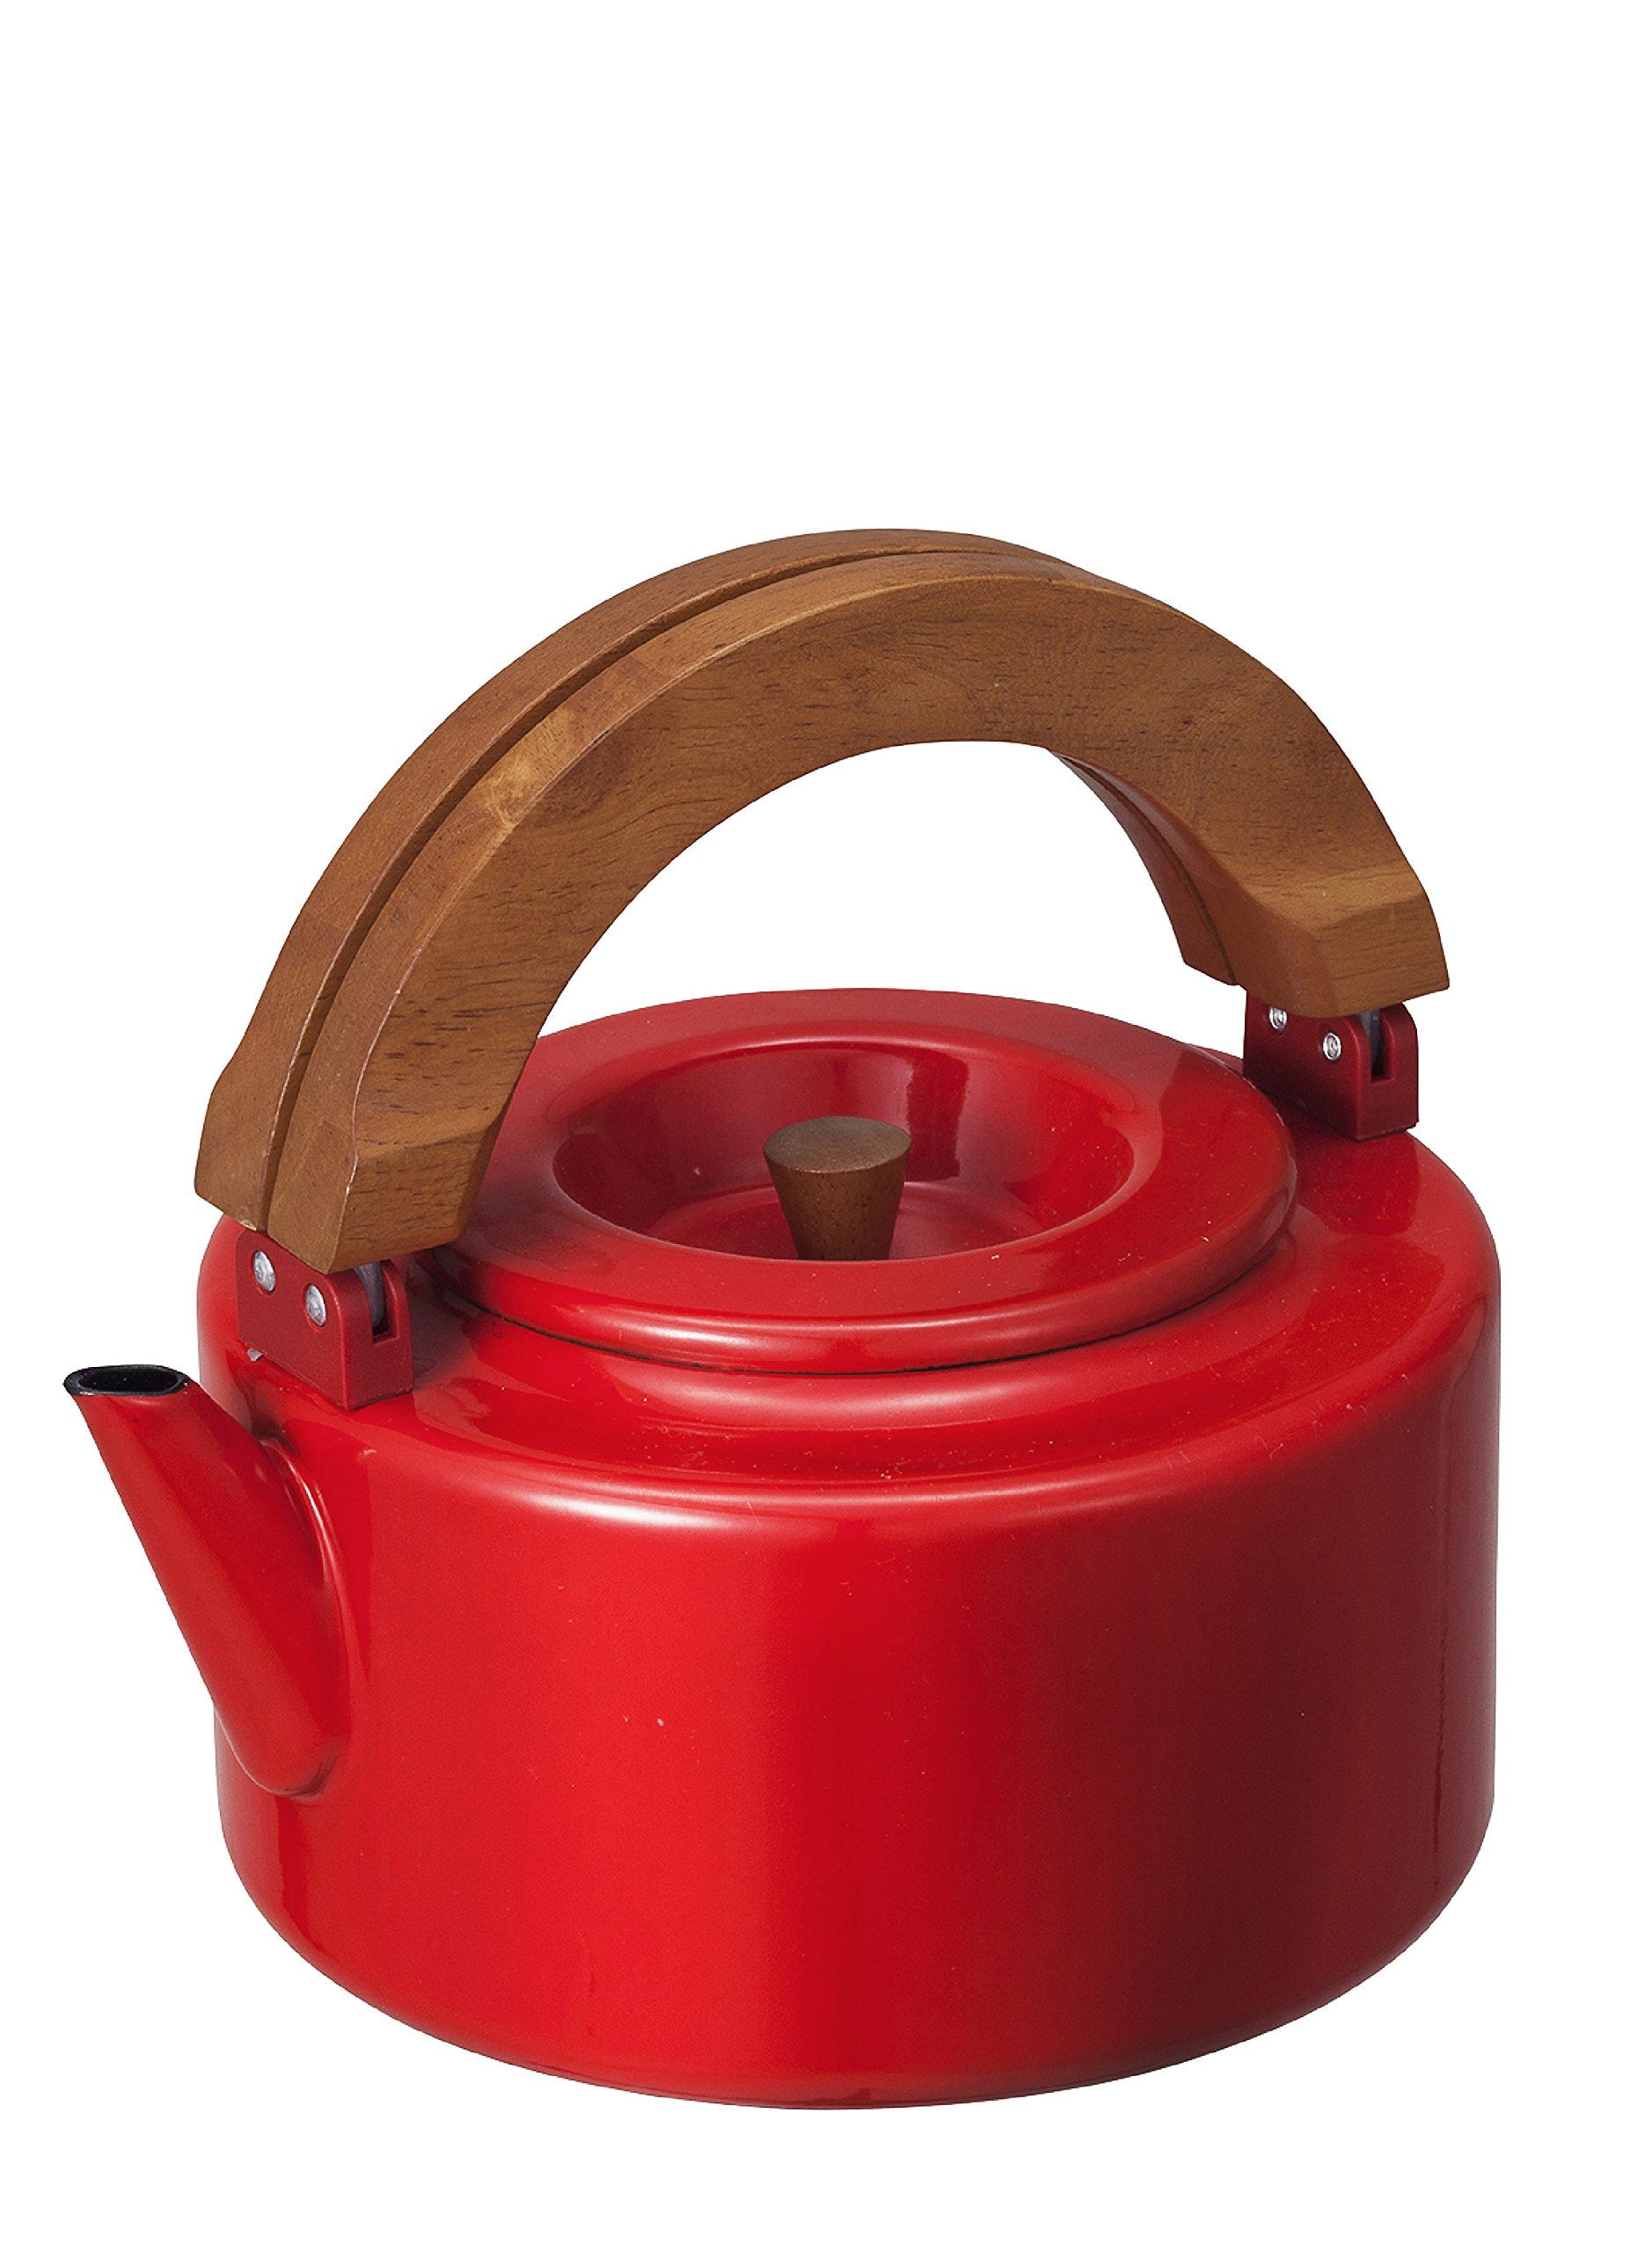 CB JAPAN Nordica Flat Kettle (Red)【Japan Domestic genuine products】